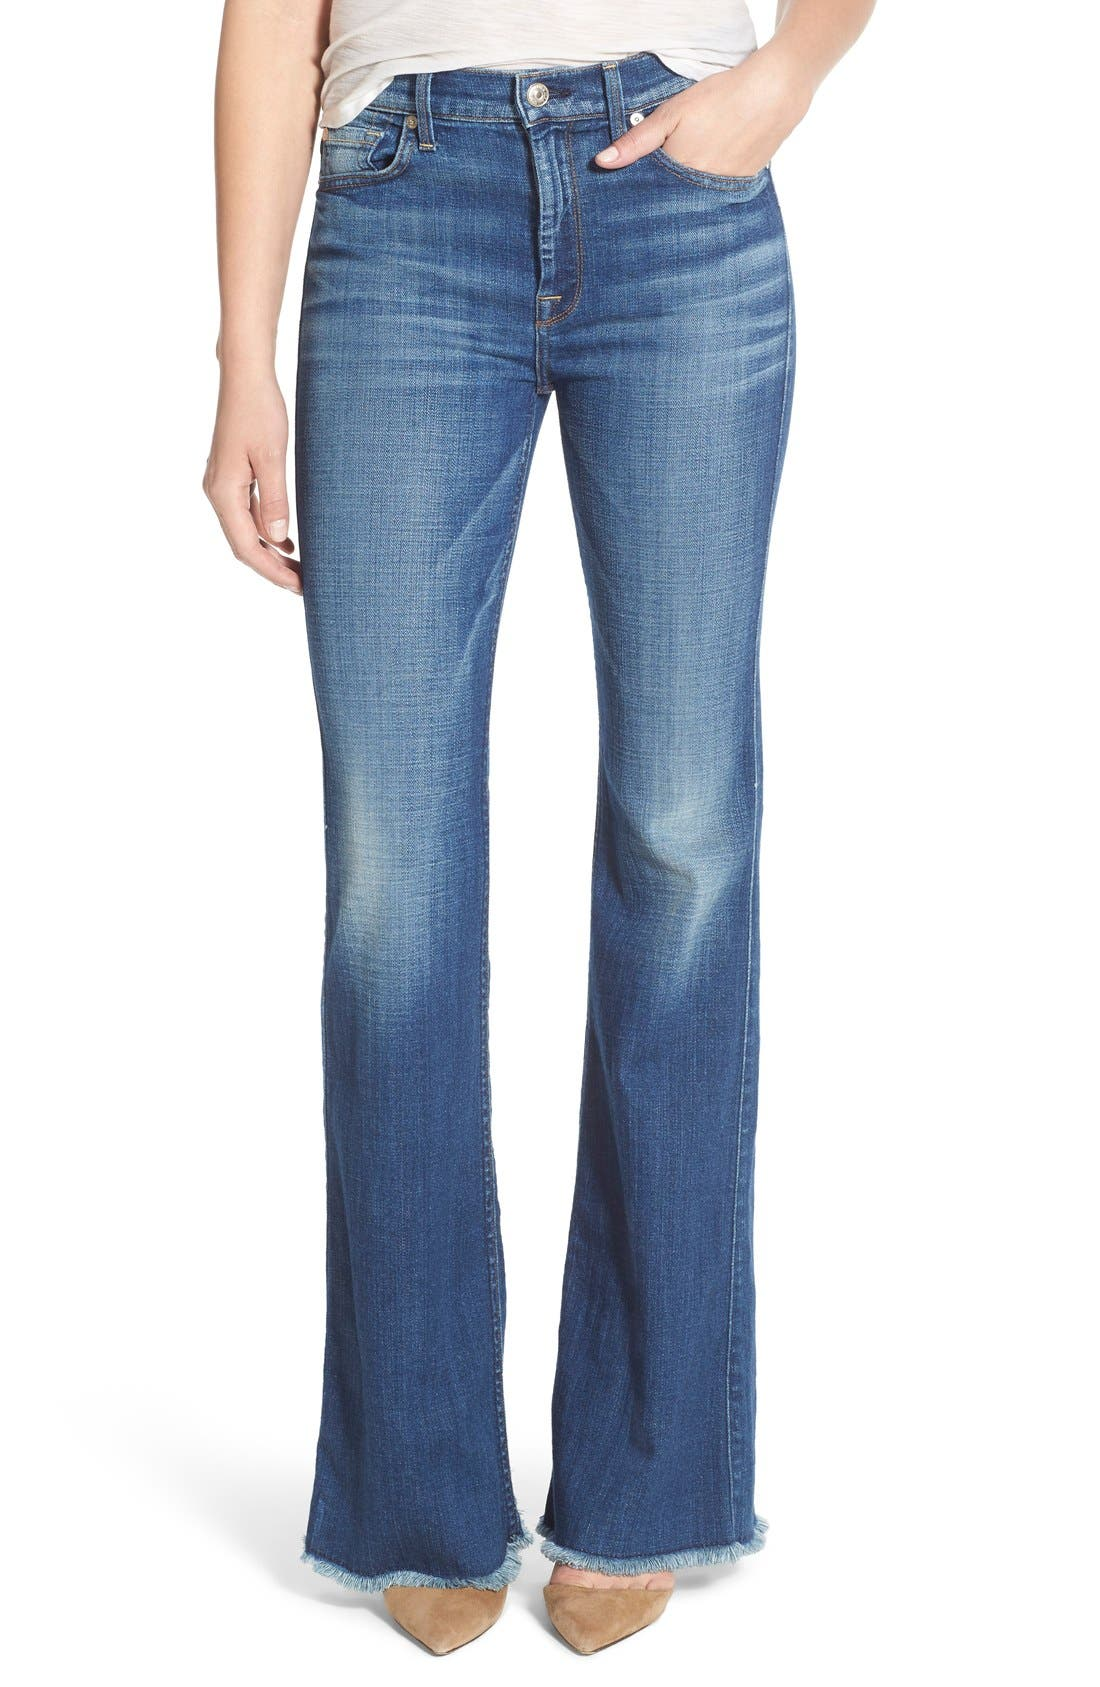 Alternate Image 1 Selected - 7 For All Mankind® 'Ginger' High Rise Raw Hem Flare Jeans (Athens Broken Twill)